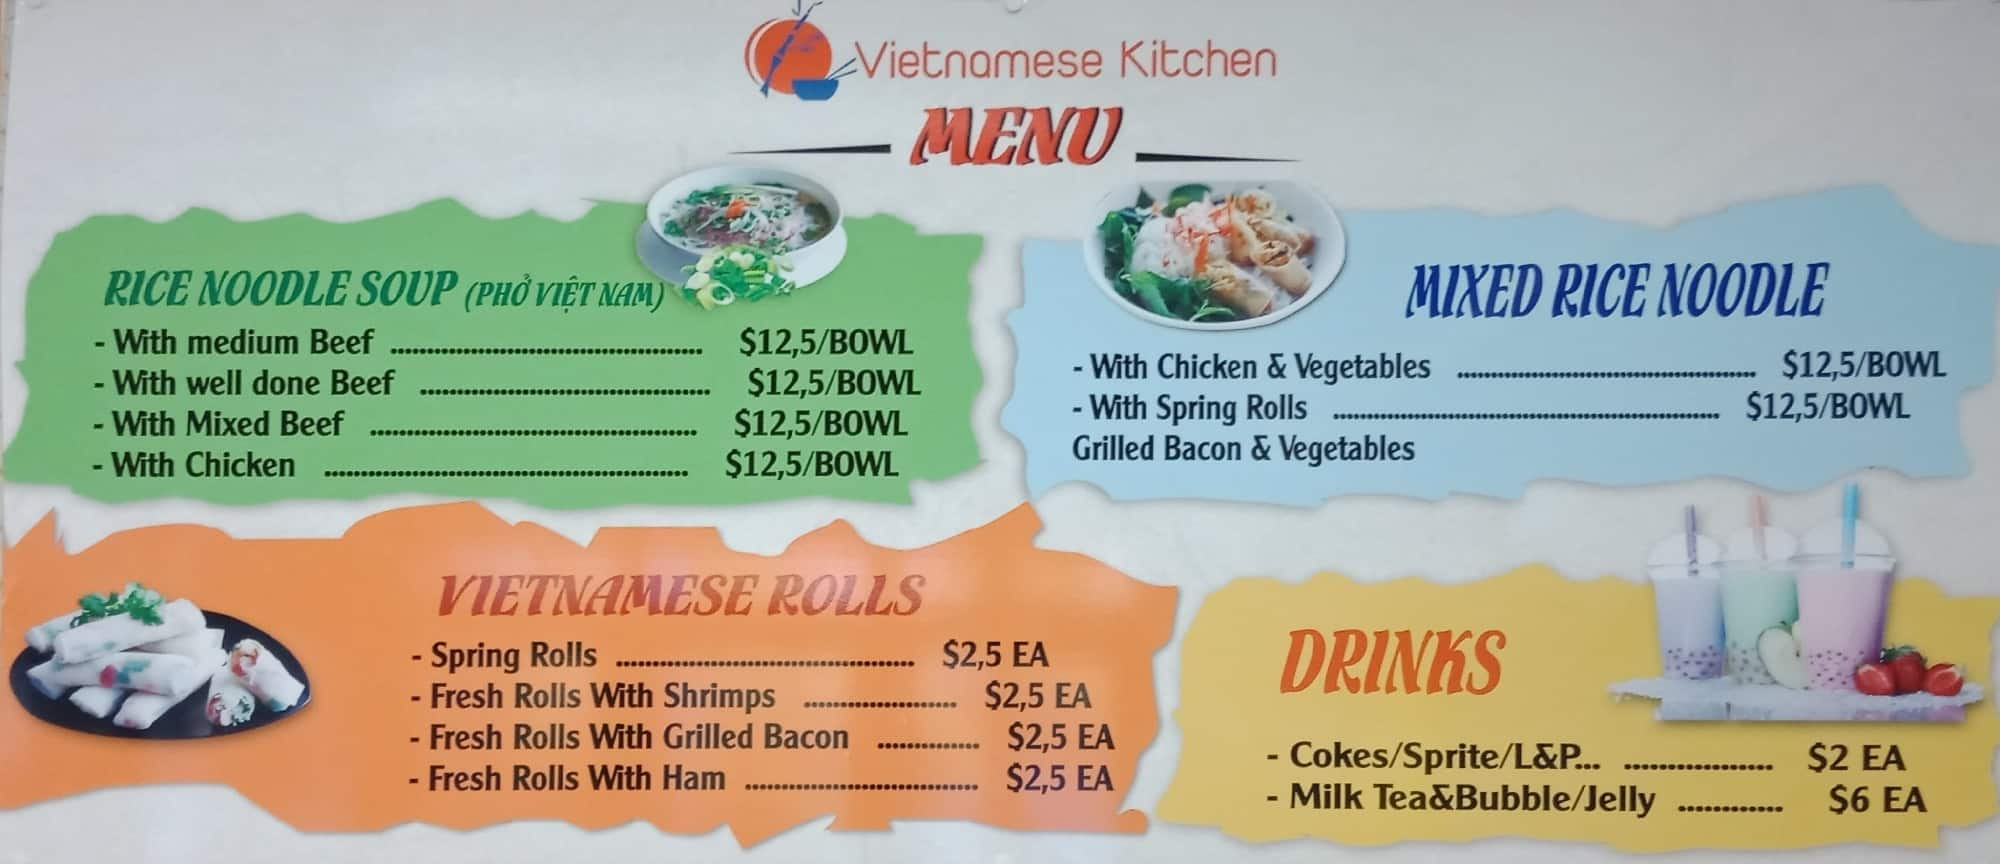 Vietnamese Kitchen Menu, Menu for Vietnamese Kitchen, Hamilton ...